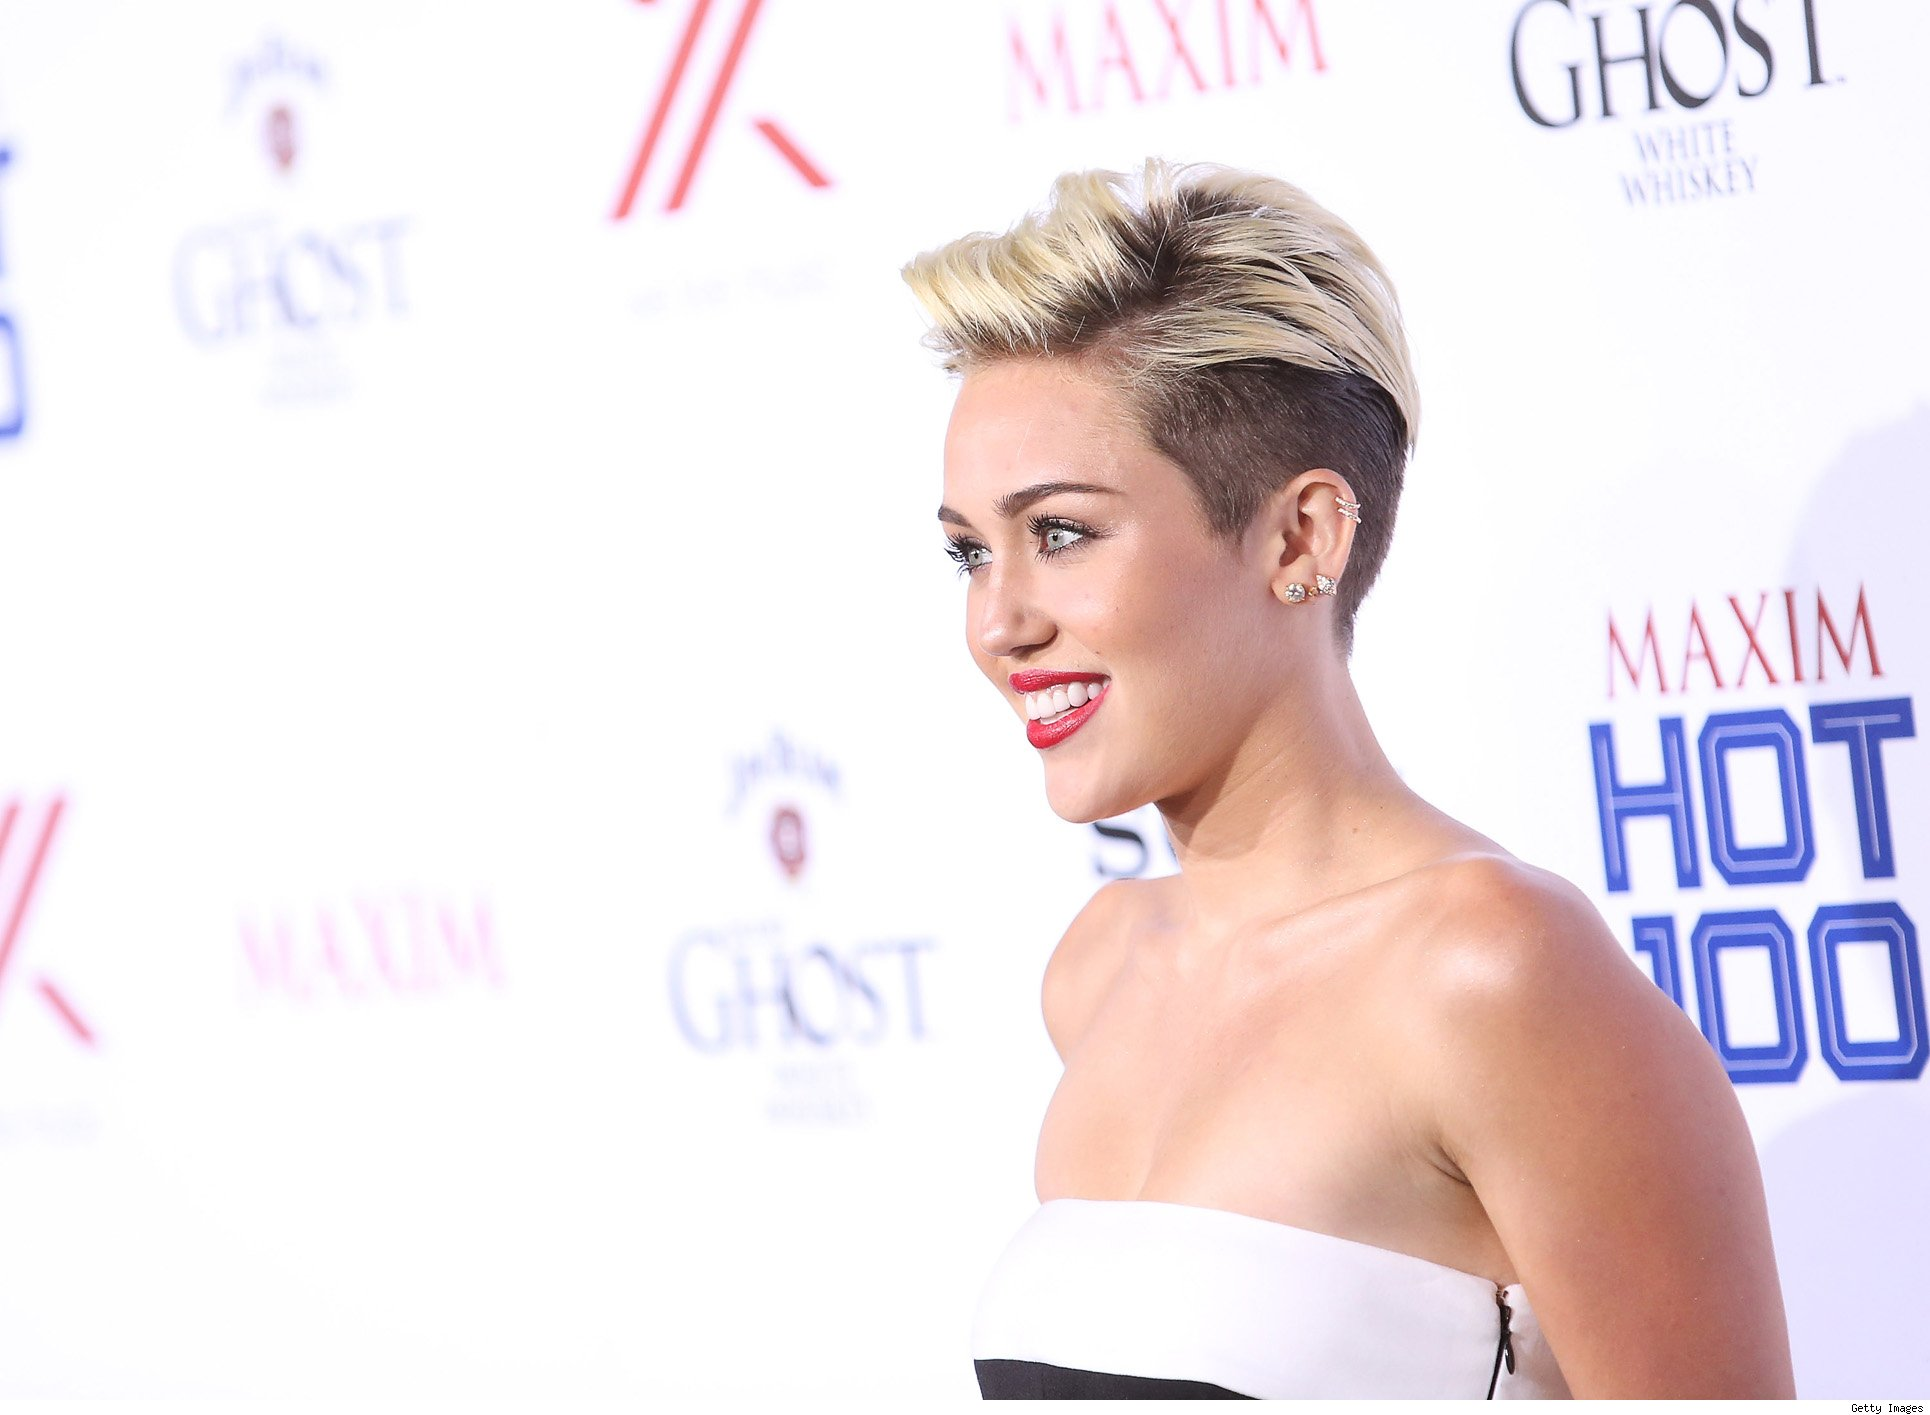 Top 9 at 9: Miley's Makeup Mishap, The Office Finale and More